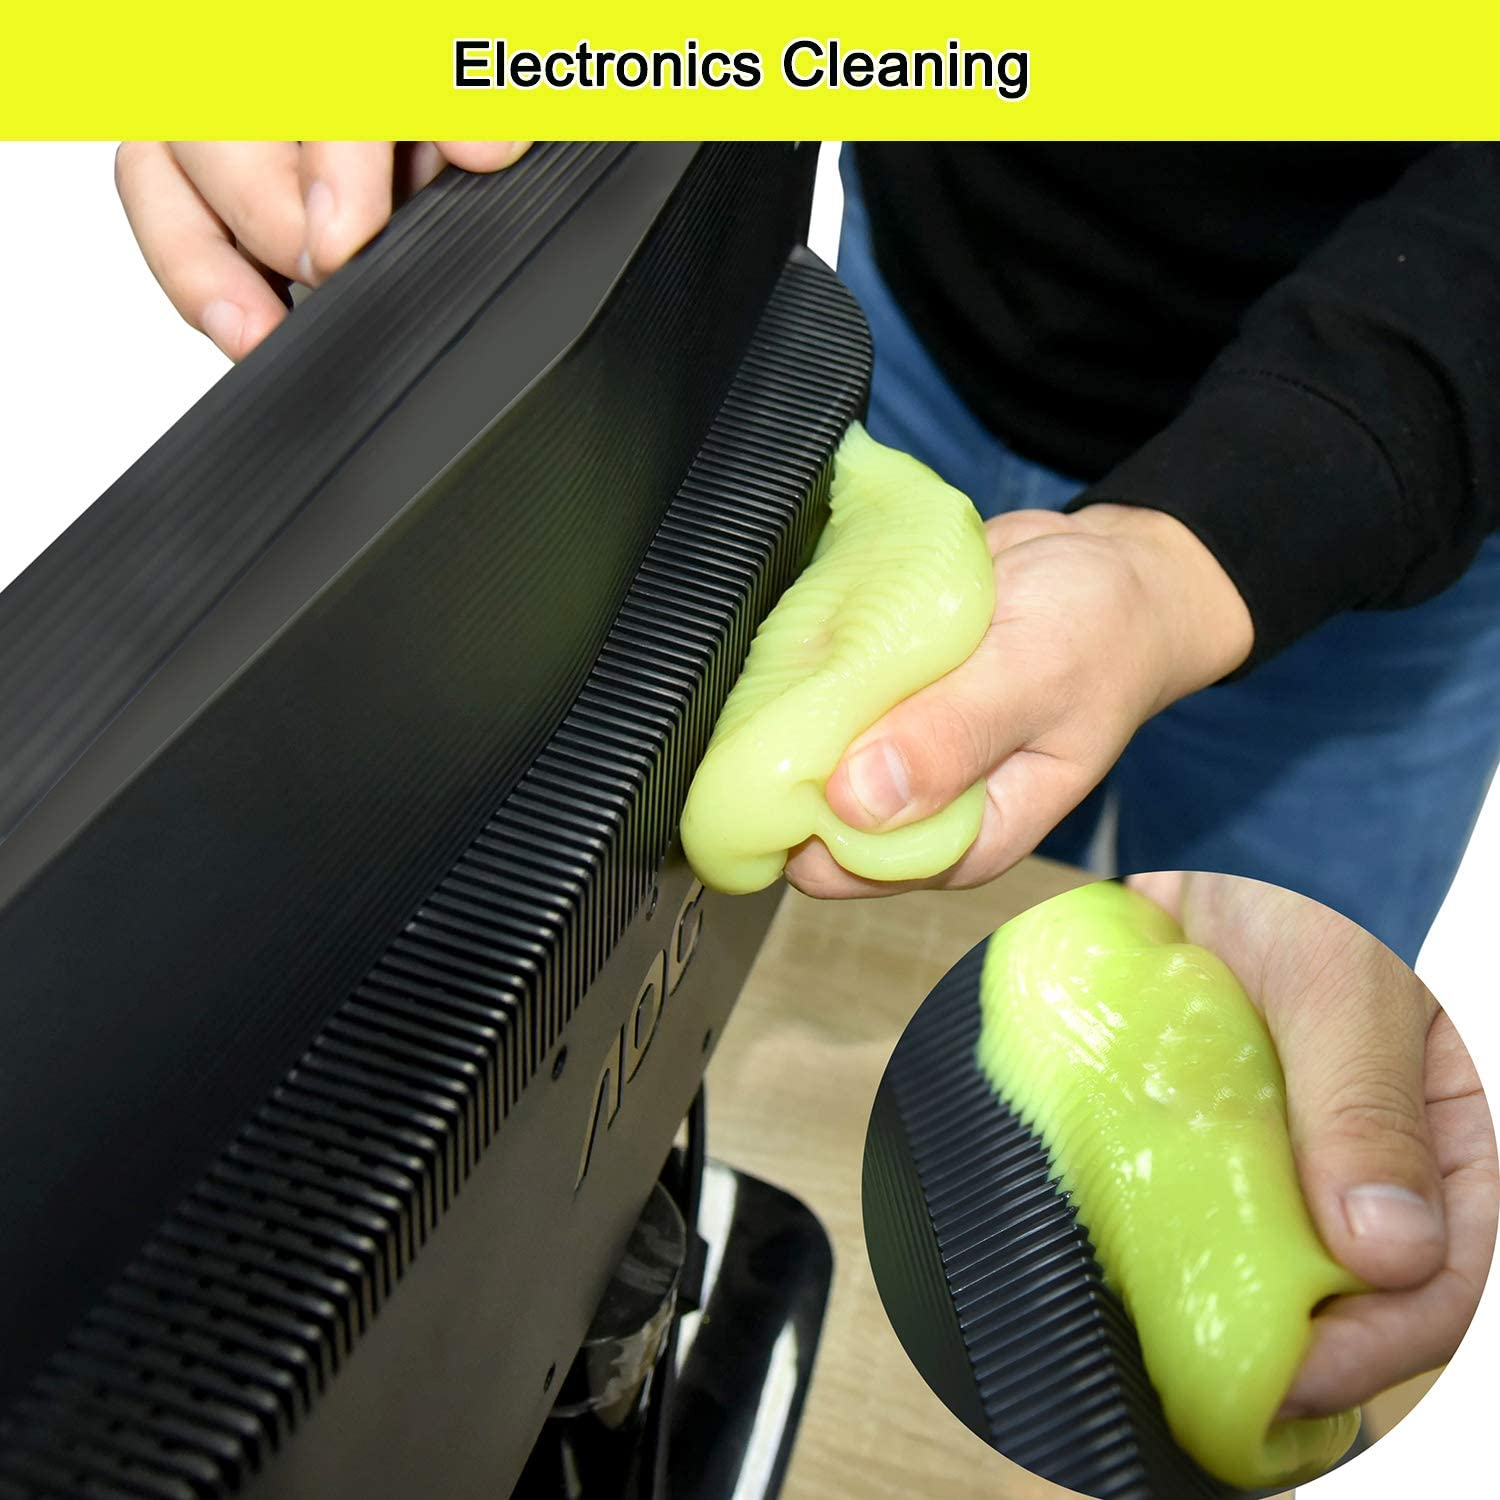 Cleaning Gel Universal Dust Cleaner for PC Keyboard Cleaning Car Detailing Laptop Dusting Home and Office Electronics Cleaning Kit Computer Dust Remover from ColorCoral 160G: Home Audio & Theater